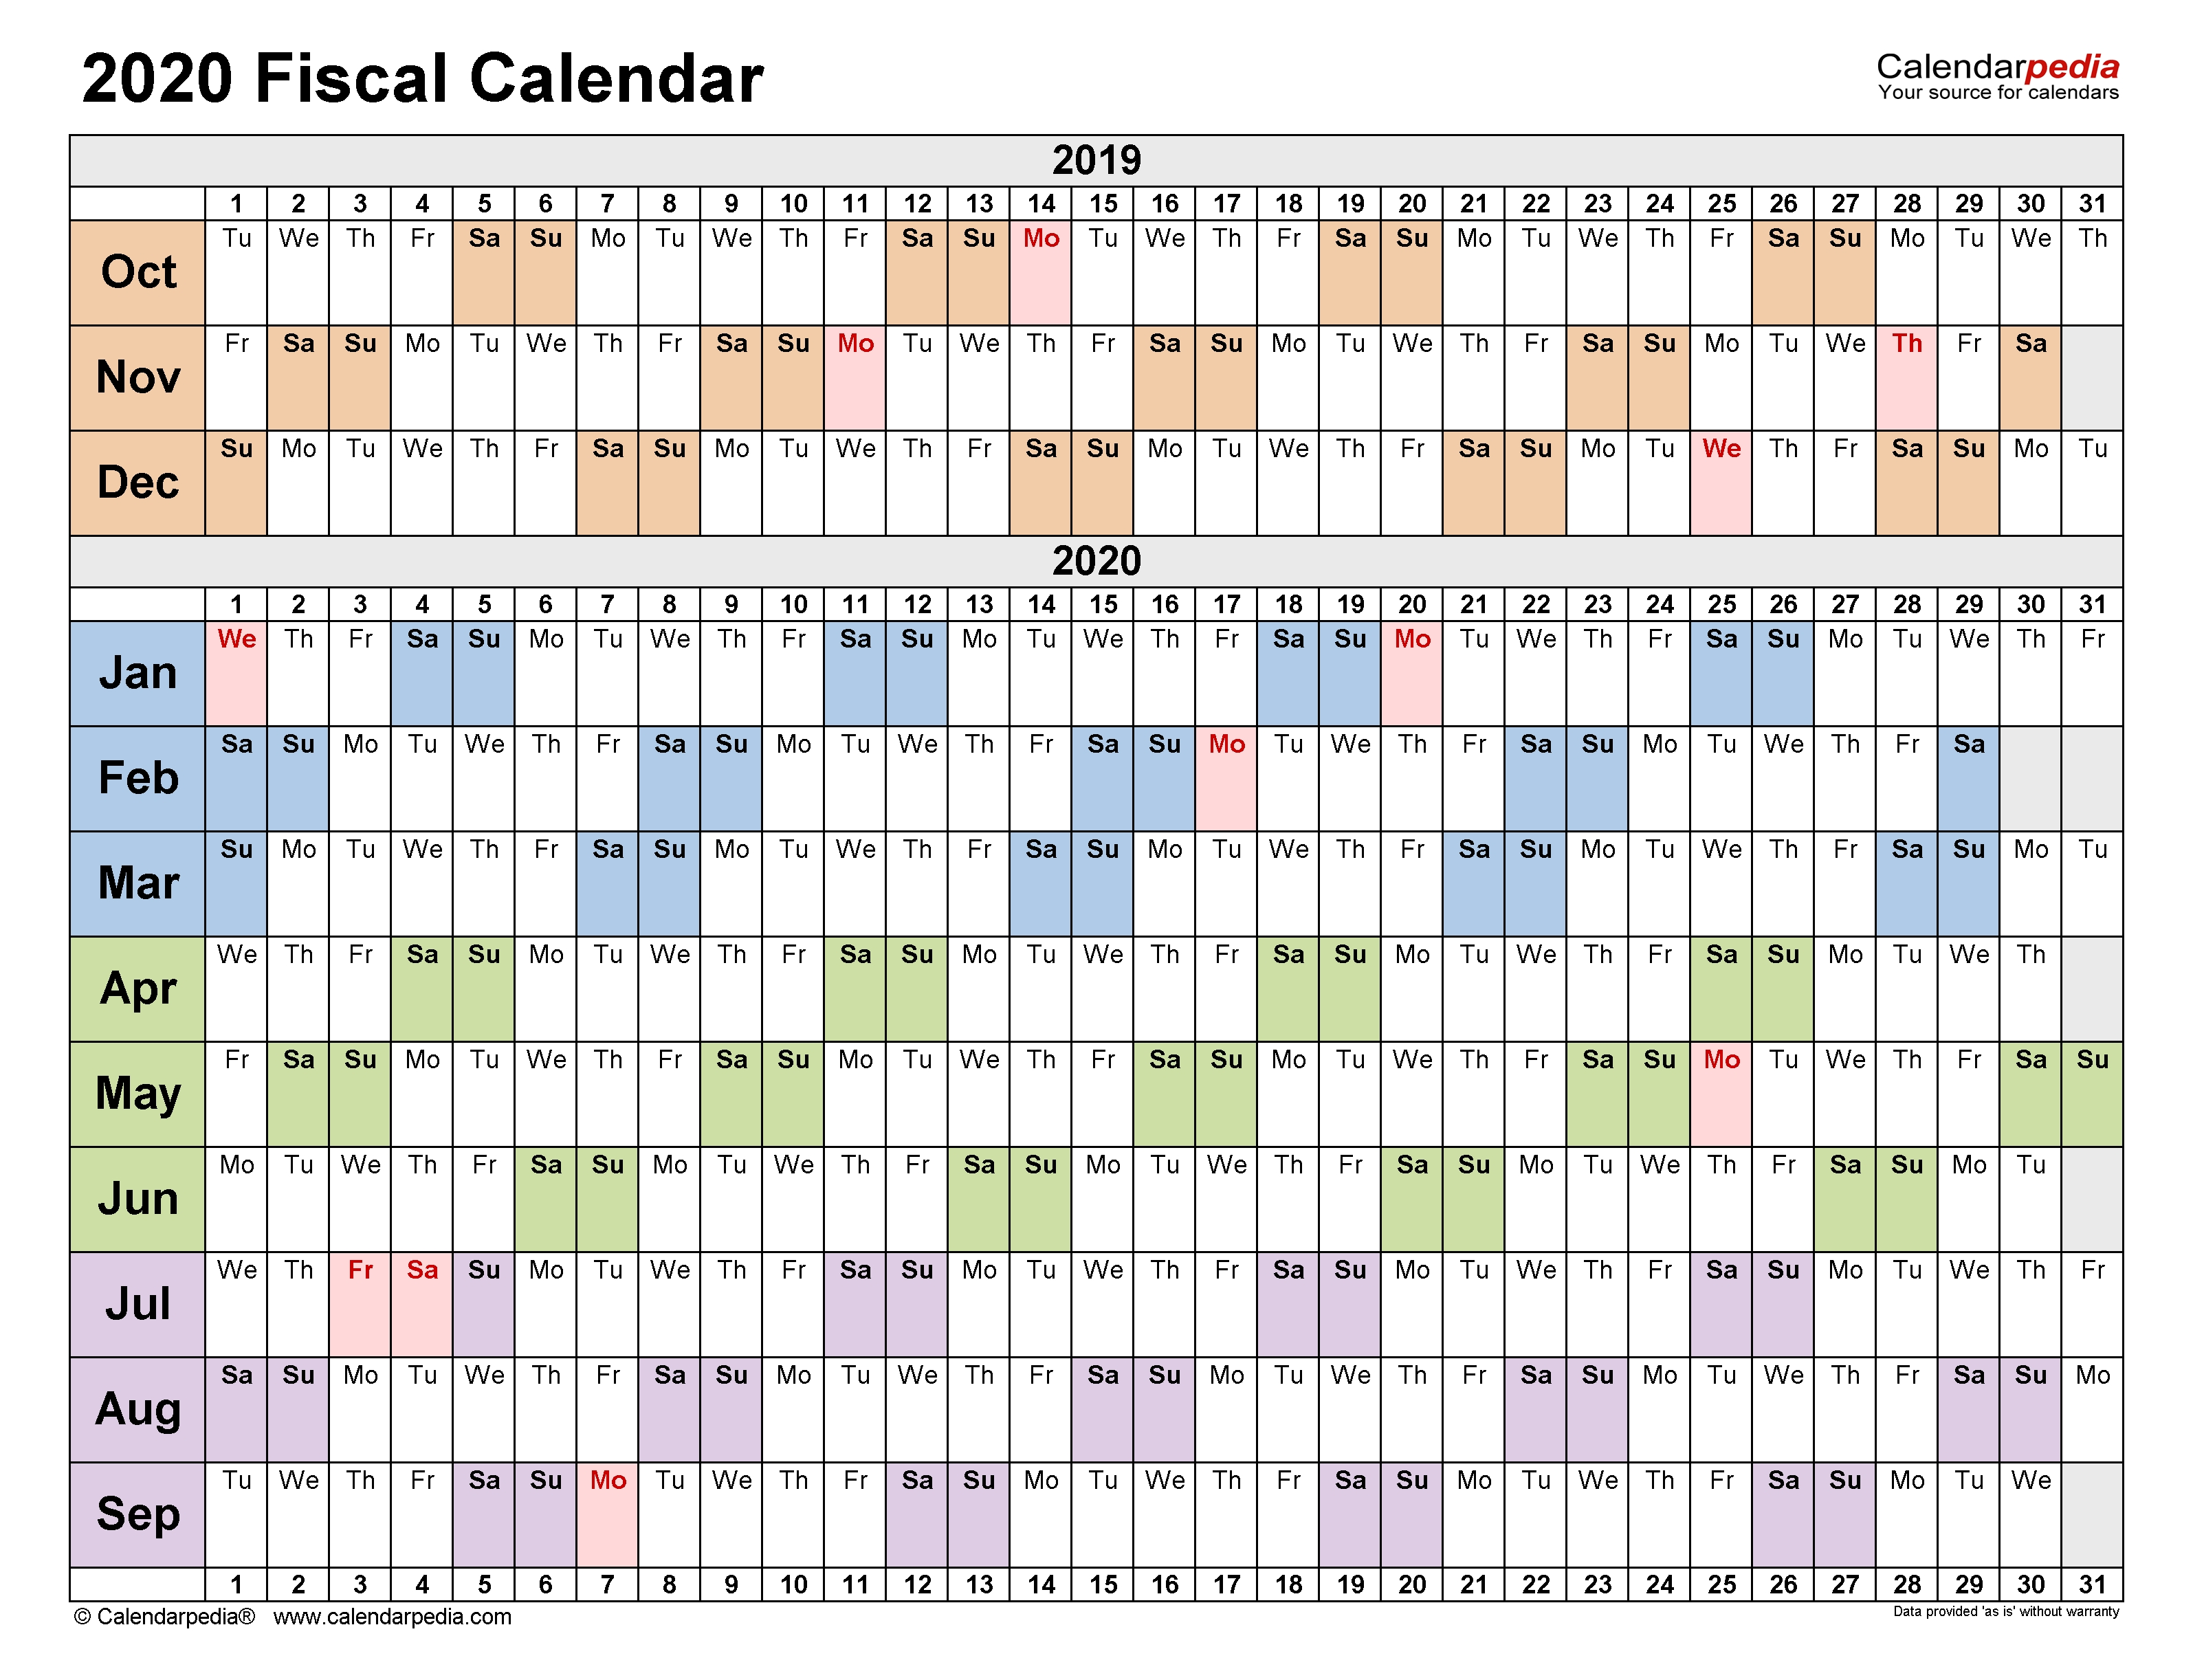 Fiscal Calendars 2020 - Free Printable Pdf Templates with Financial Year Calendar 2019 2020